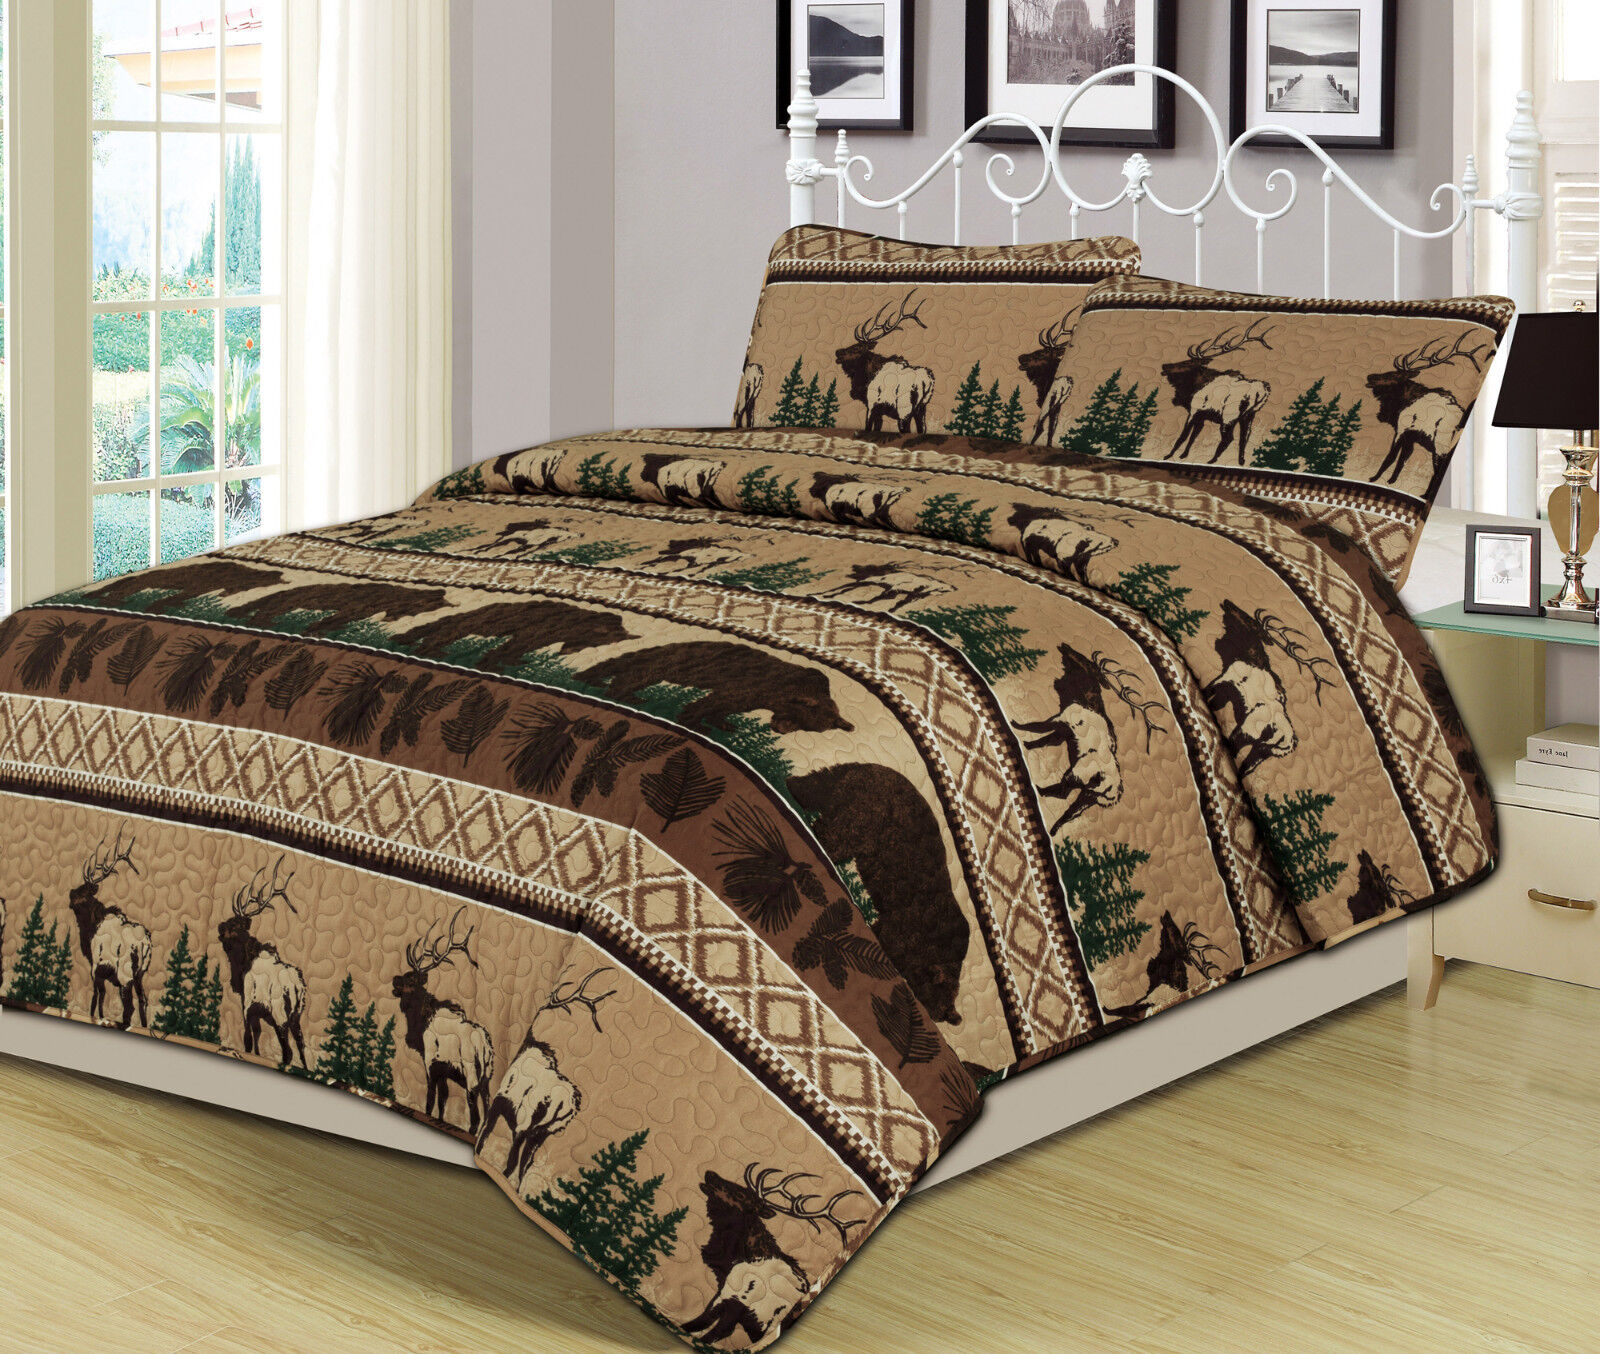 King, Queen, Twin Quilt Bed Set or Curtain Pair Bear Elk Log Cabin Lodge Rustic Bedding